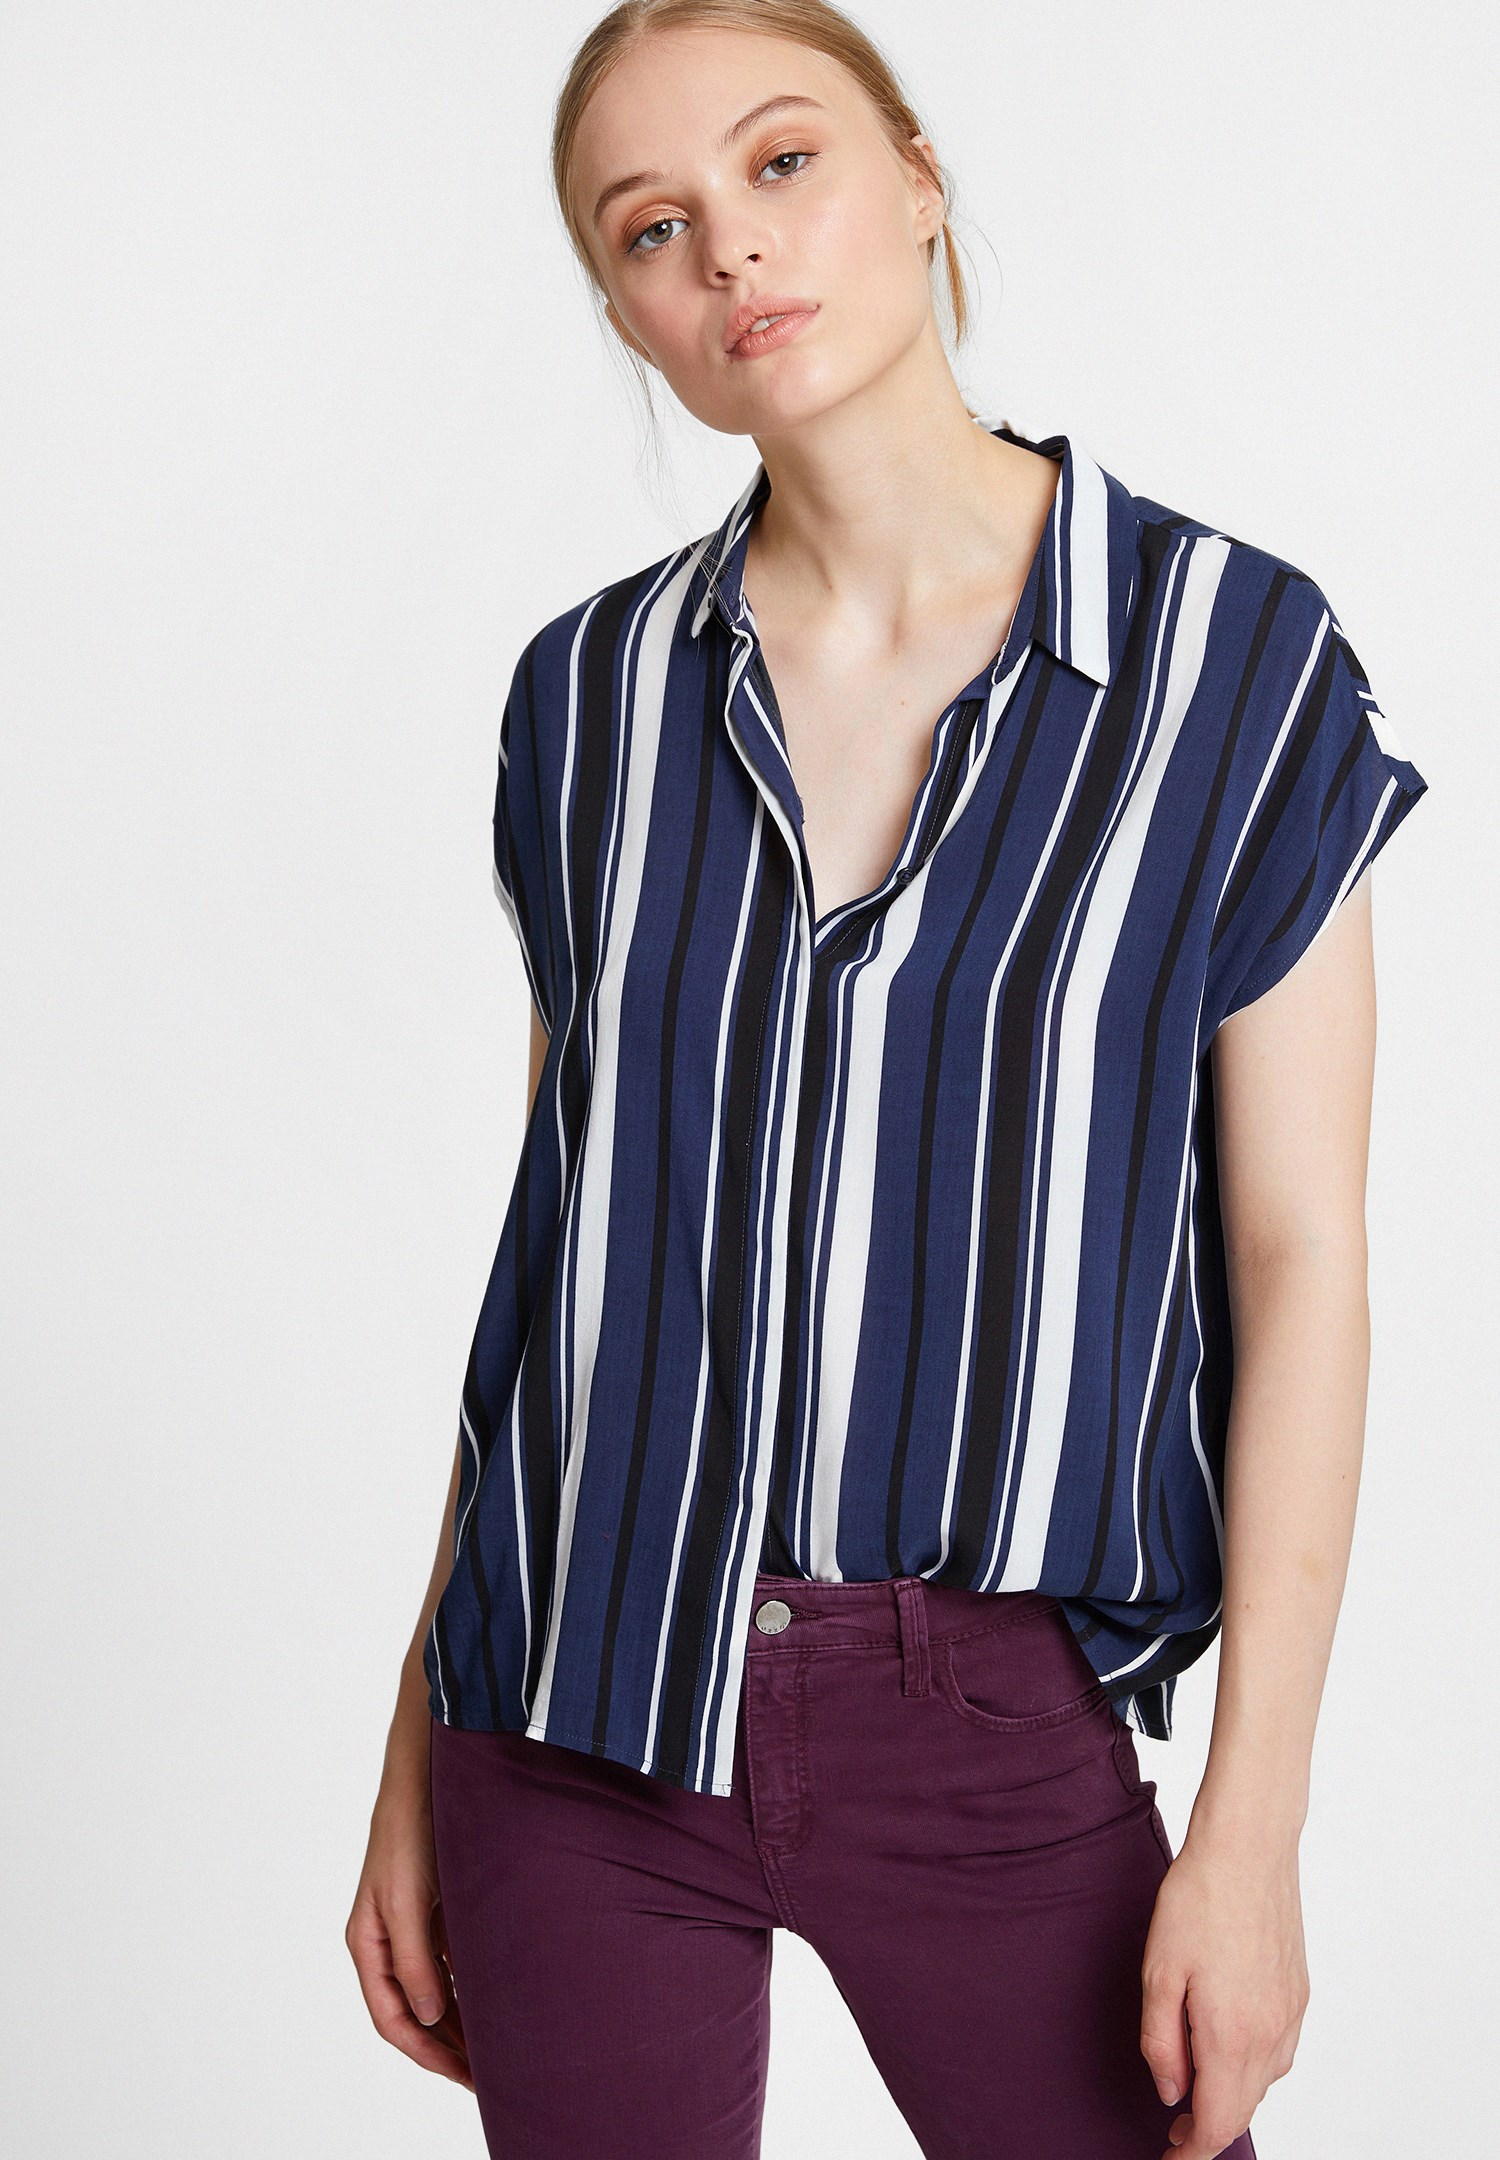 Women Mixed Shirt with Mix Pattern